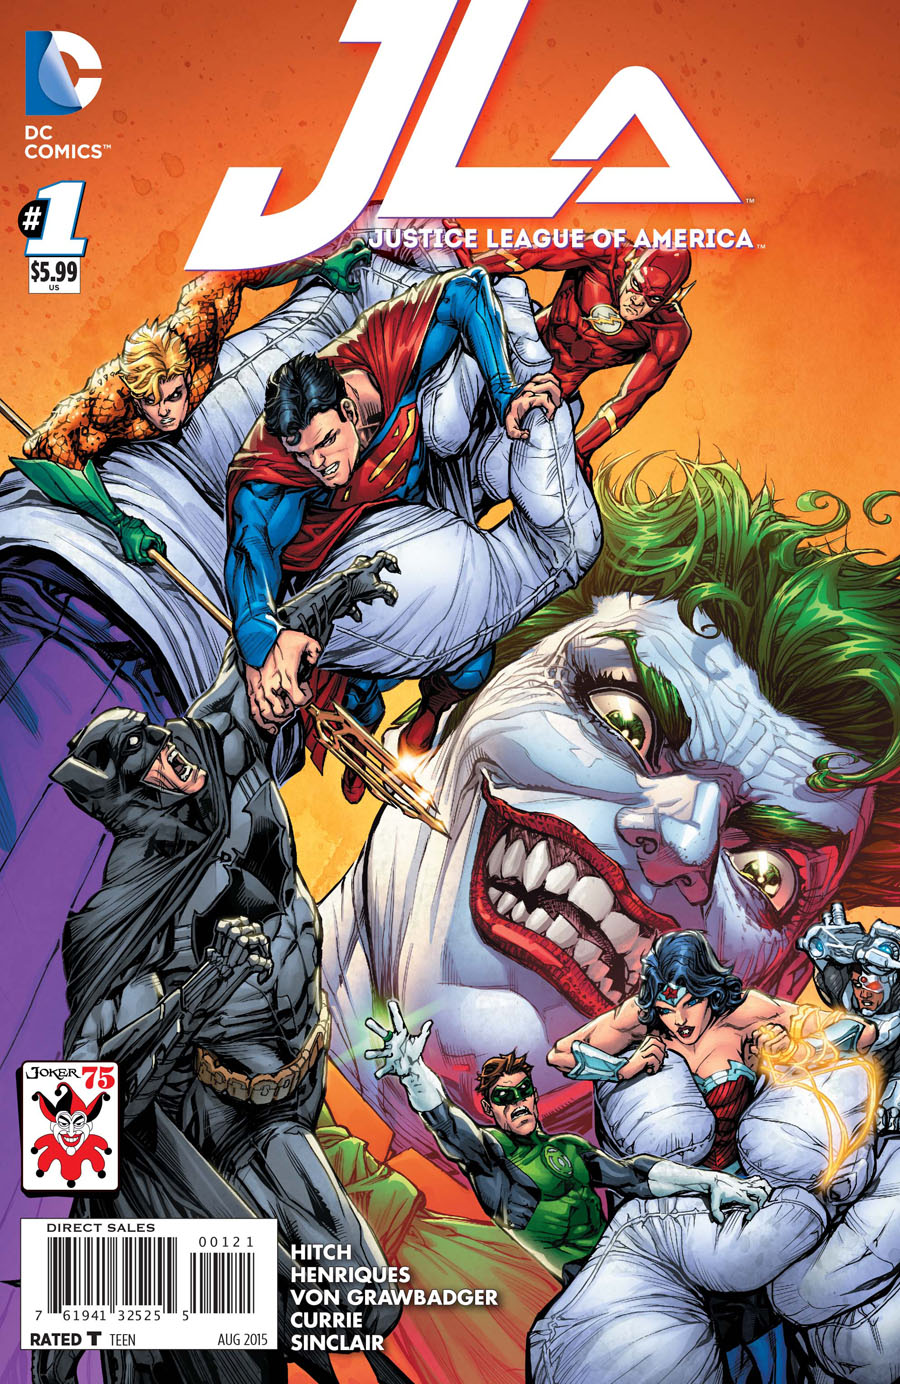 Justice League of America #1